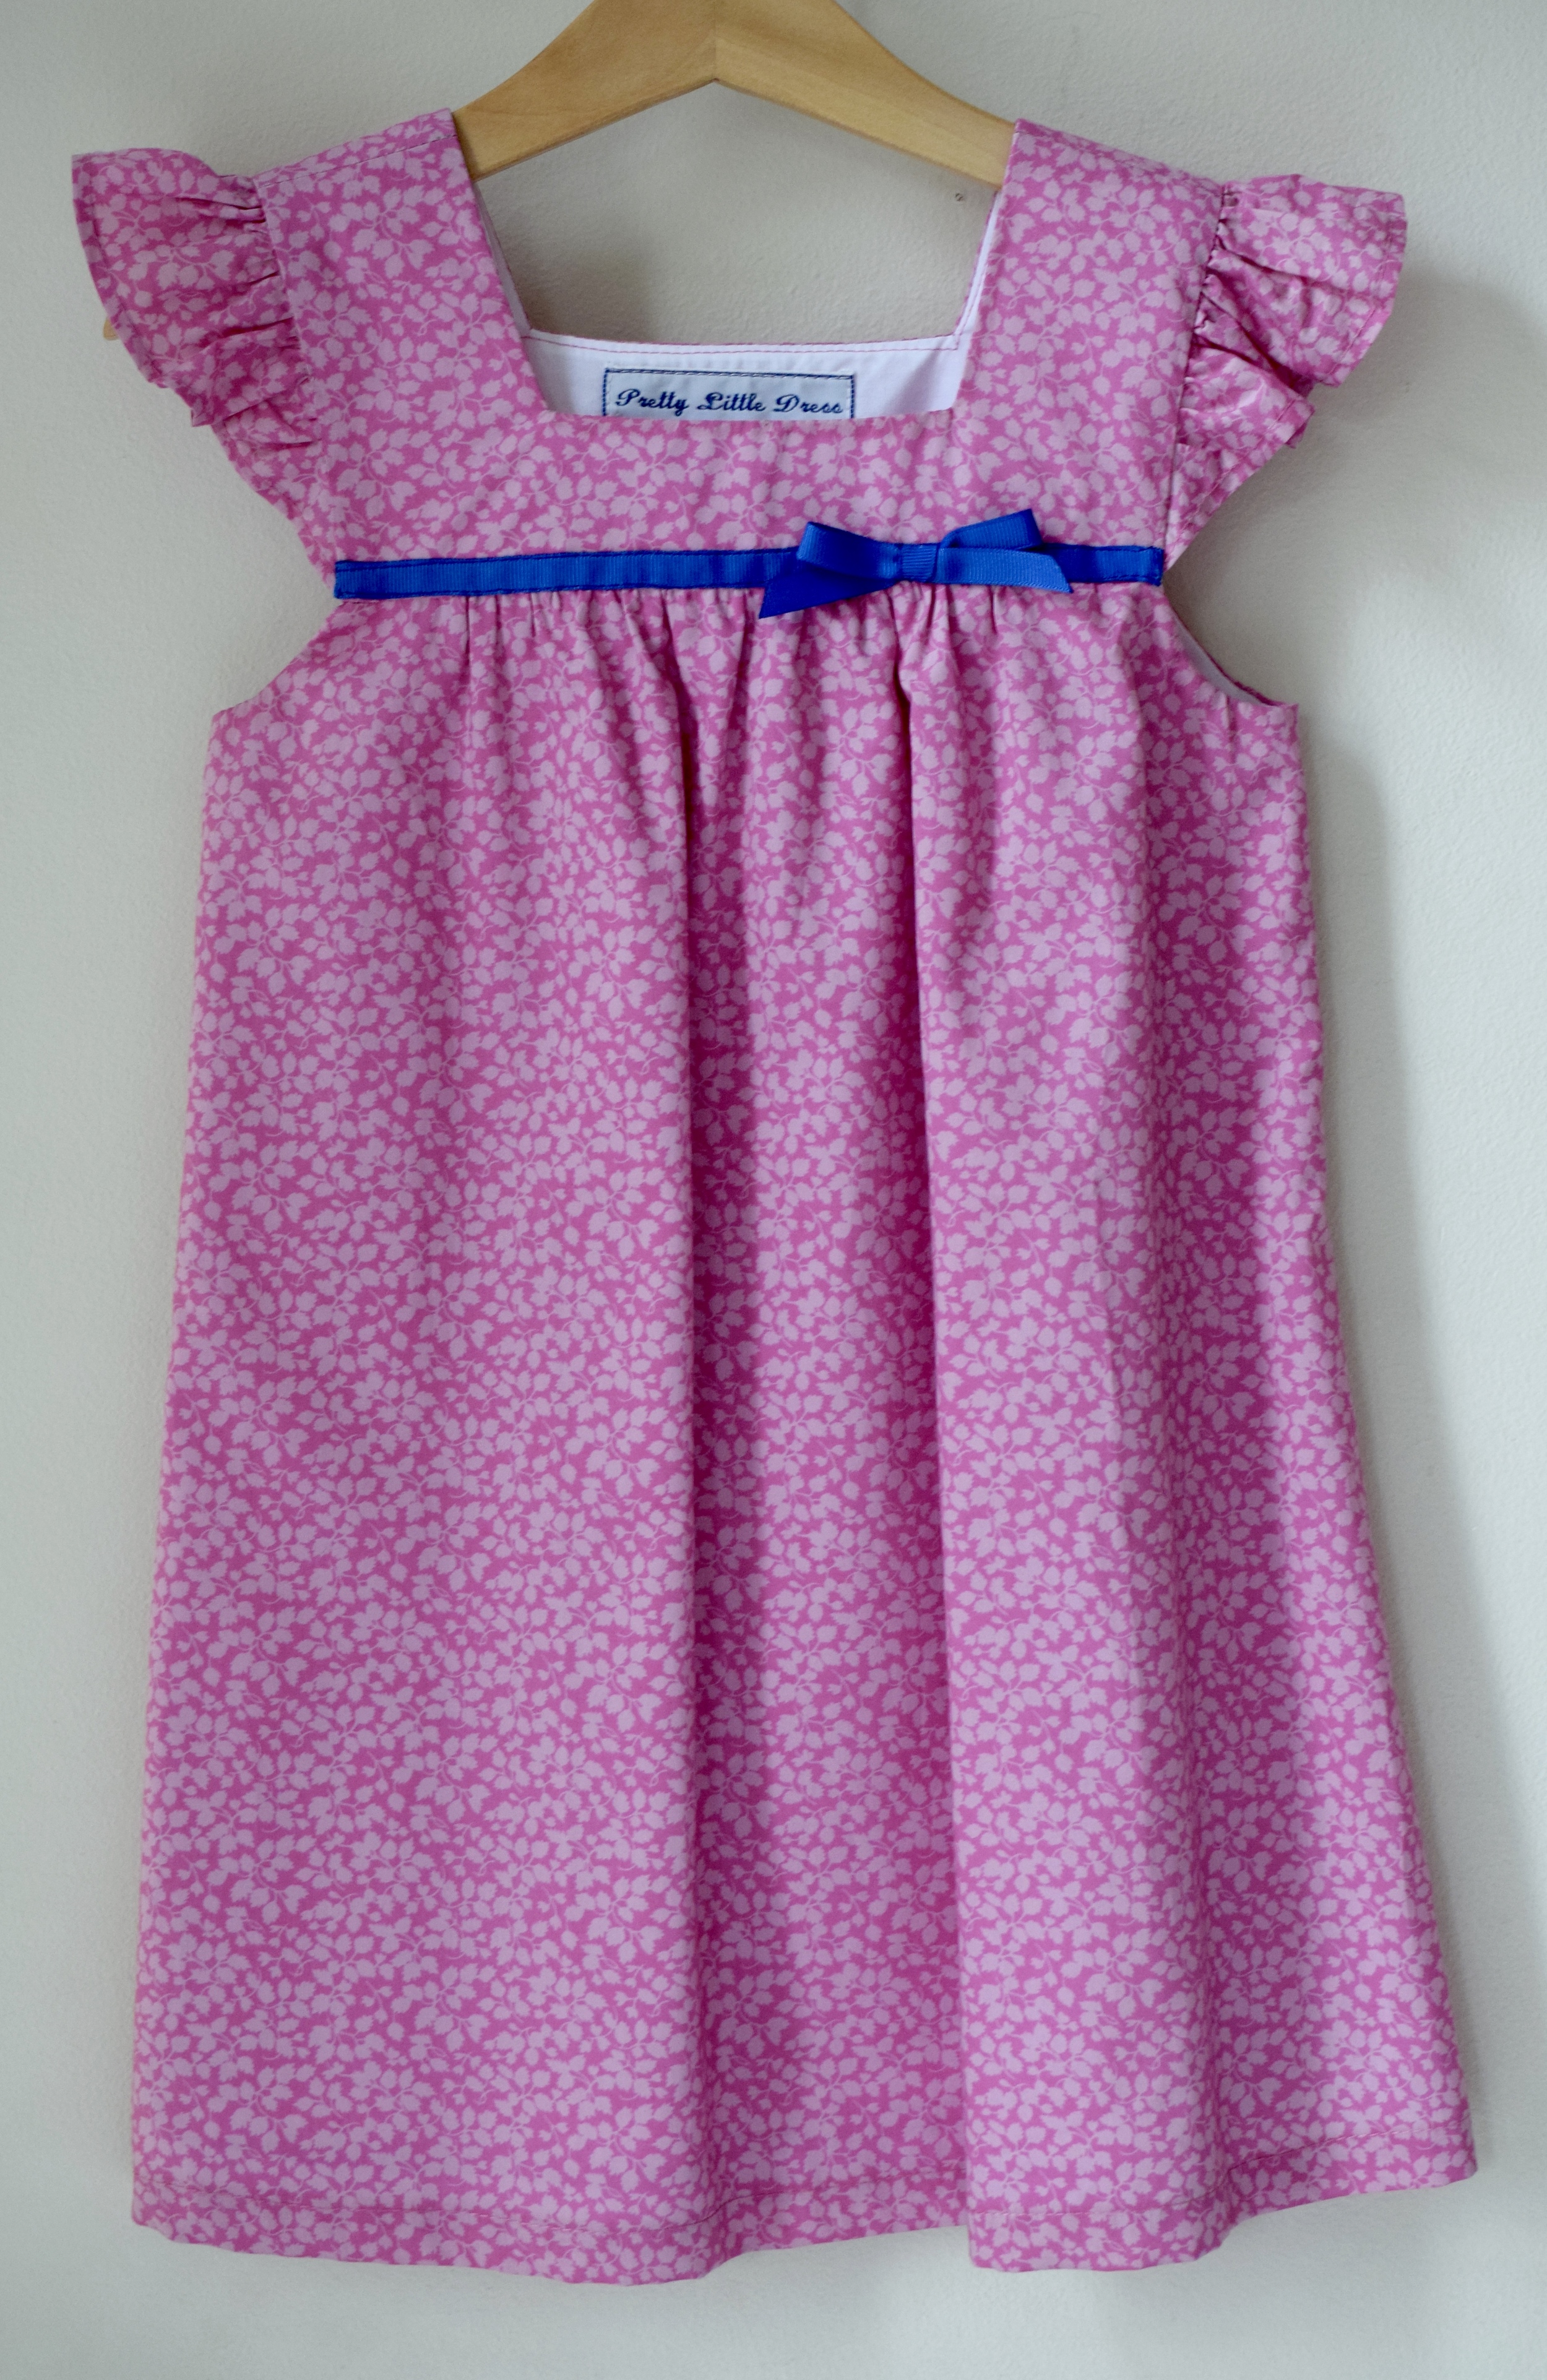 Pink Glenjade ruffle Dress £43   Liberty print dress with ruffle sleeves and square neck detail. Fully lined with a fixed contrasting blue grosgrain ribbon detail.Available exclusively in size 4y.